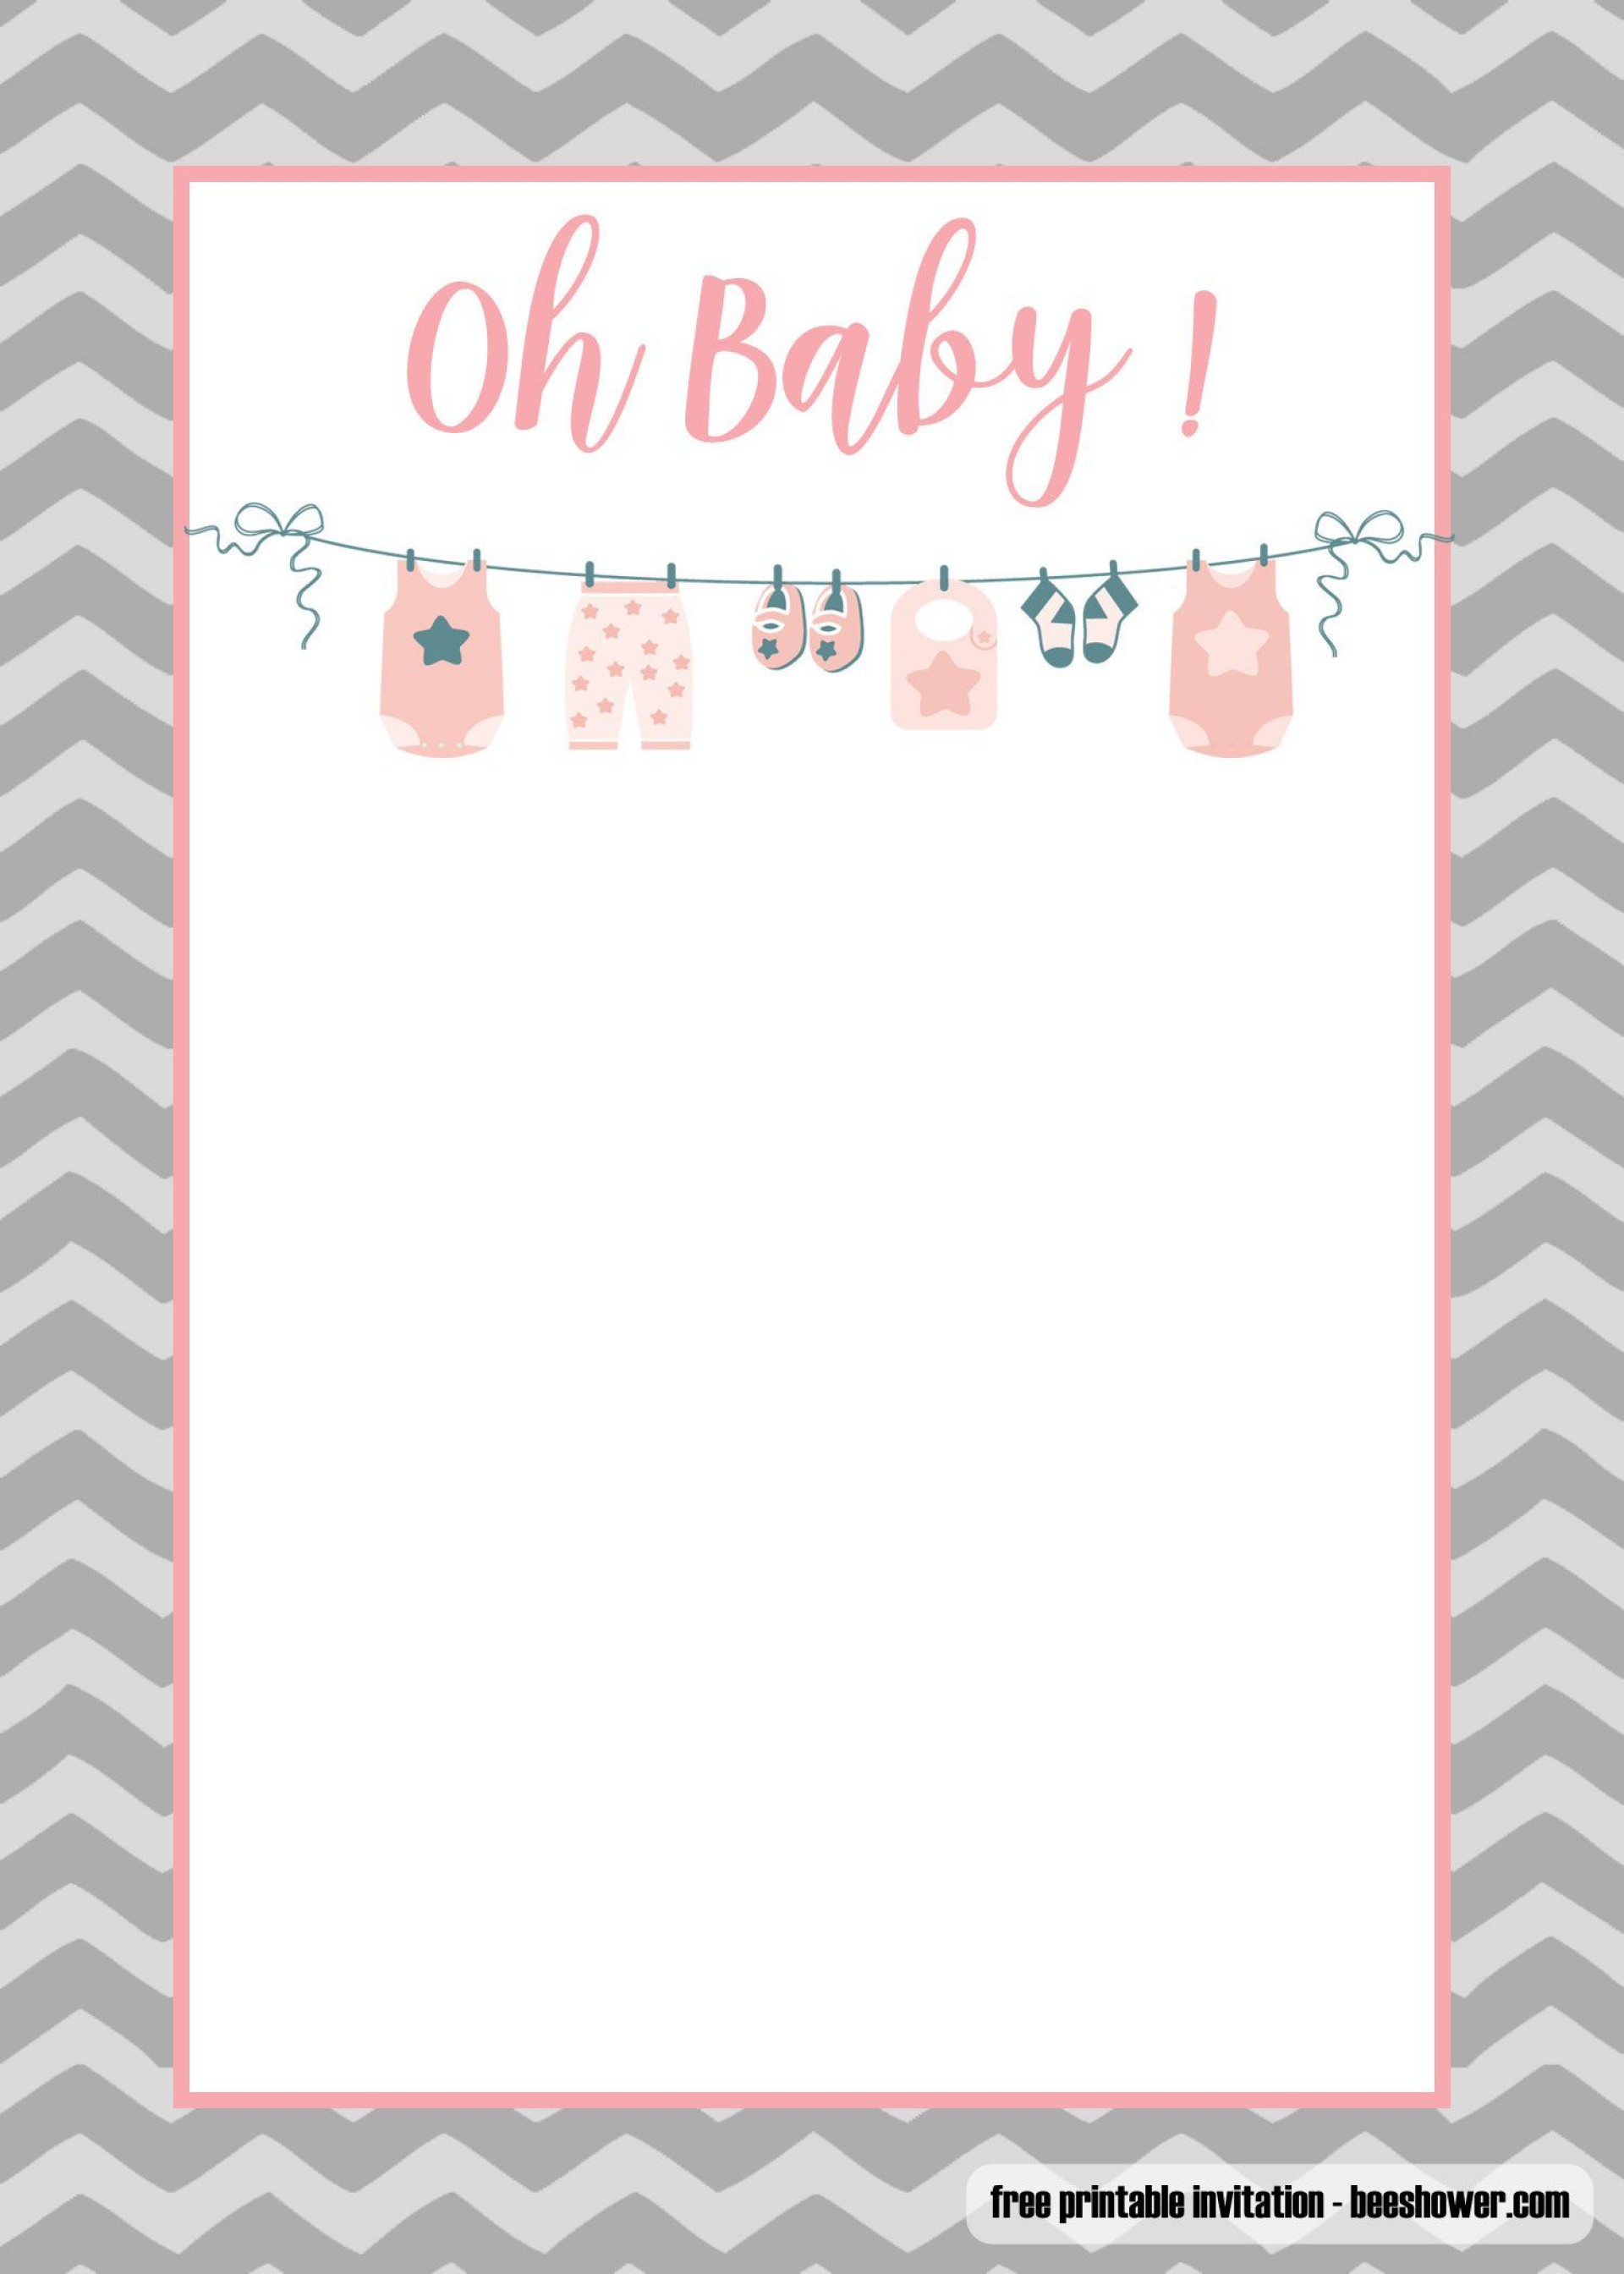 008 Remarkable Baby Shower Template Free Printable Photo  Superhero Invitation For A Boy Diaper1920